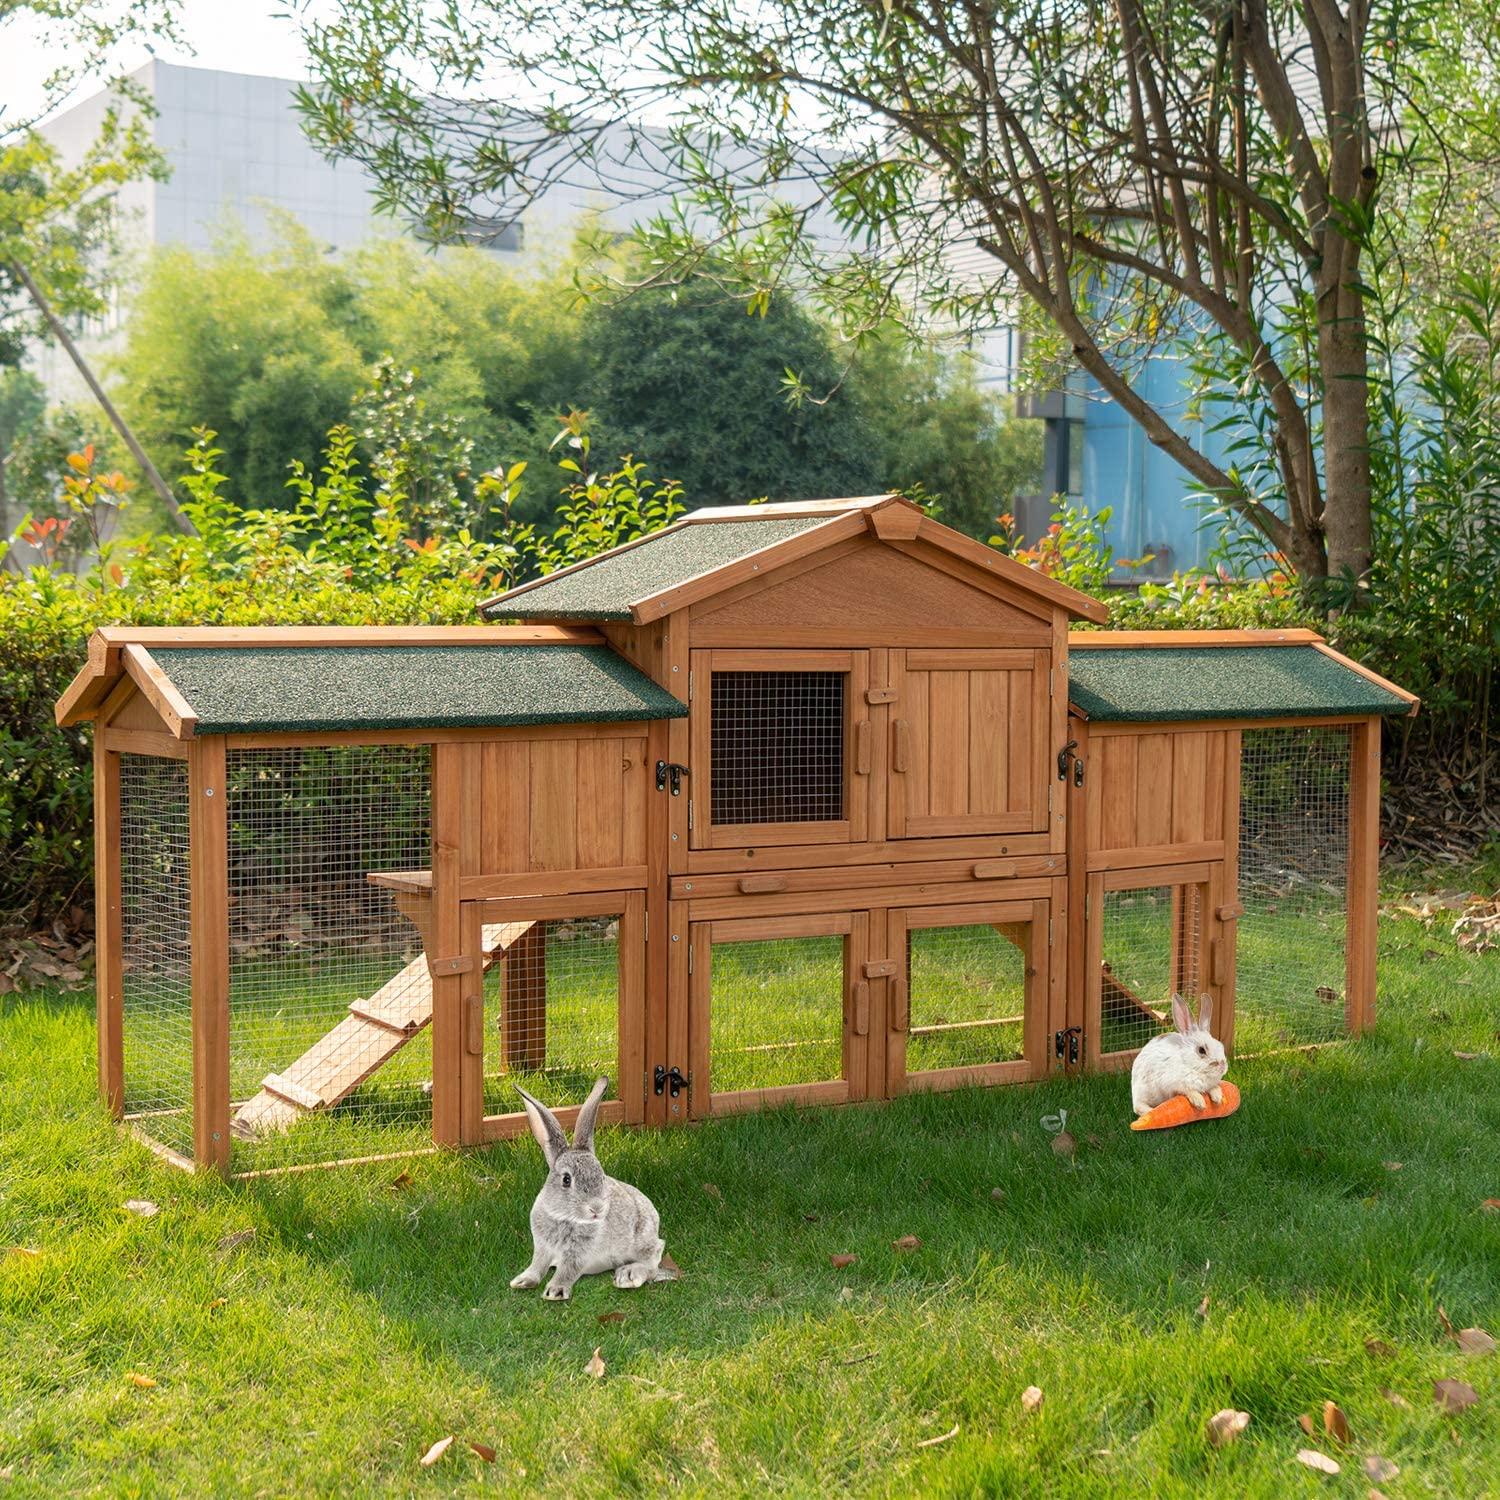 13+ KINTNESS Large Rabbit Hutch Wooden Outdoor Bunny Poultry Cage Garden  Backyard Chick Coop Hen Cage Small Animals House with 8 Ramps and Removable  Tray Kollektion